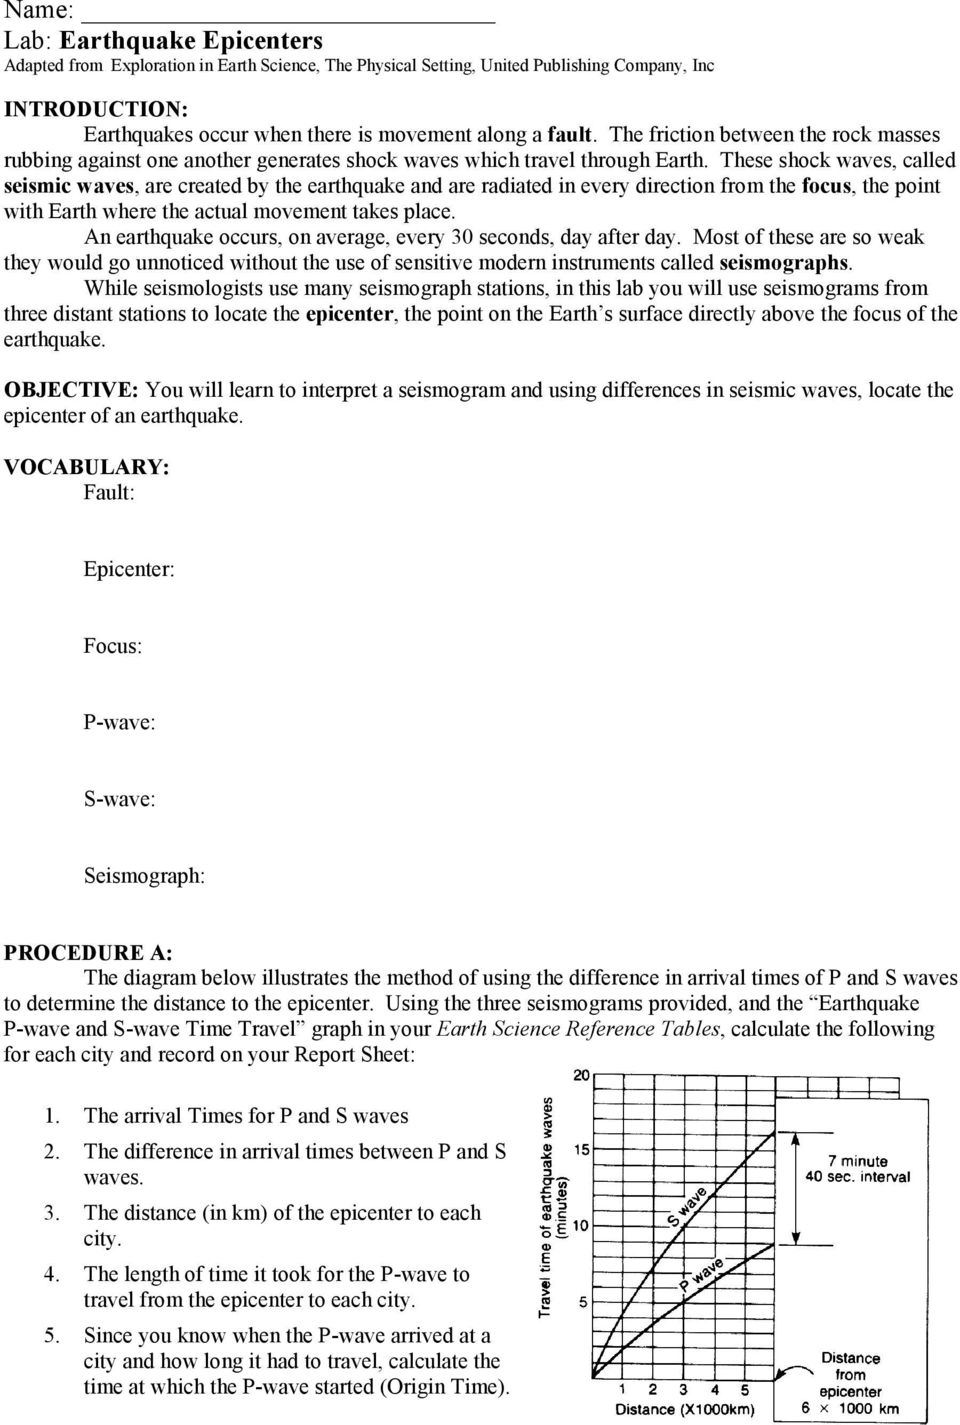 Name Lab Earthquake Epicenters Adapted From Exploration In Earth Science The Physical Setting United Publishing Company Inc Pdf Free Download